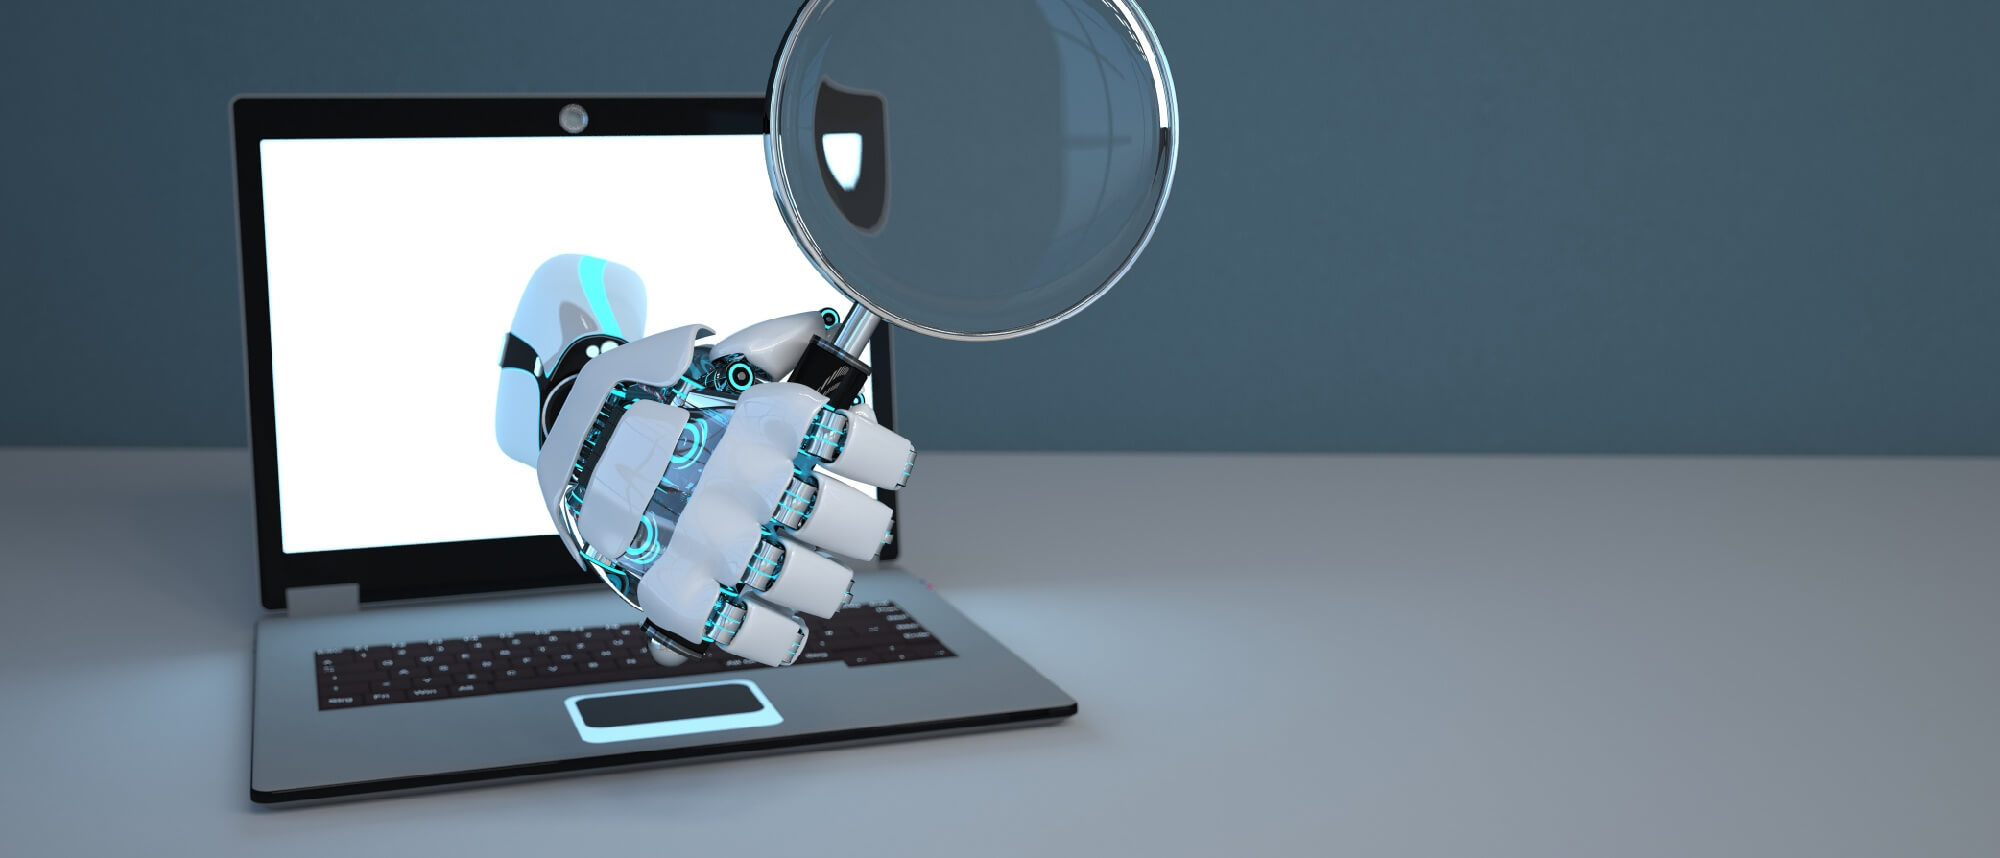 Automate the tool qualification process for safety critical software